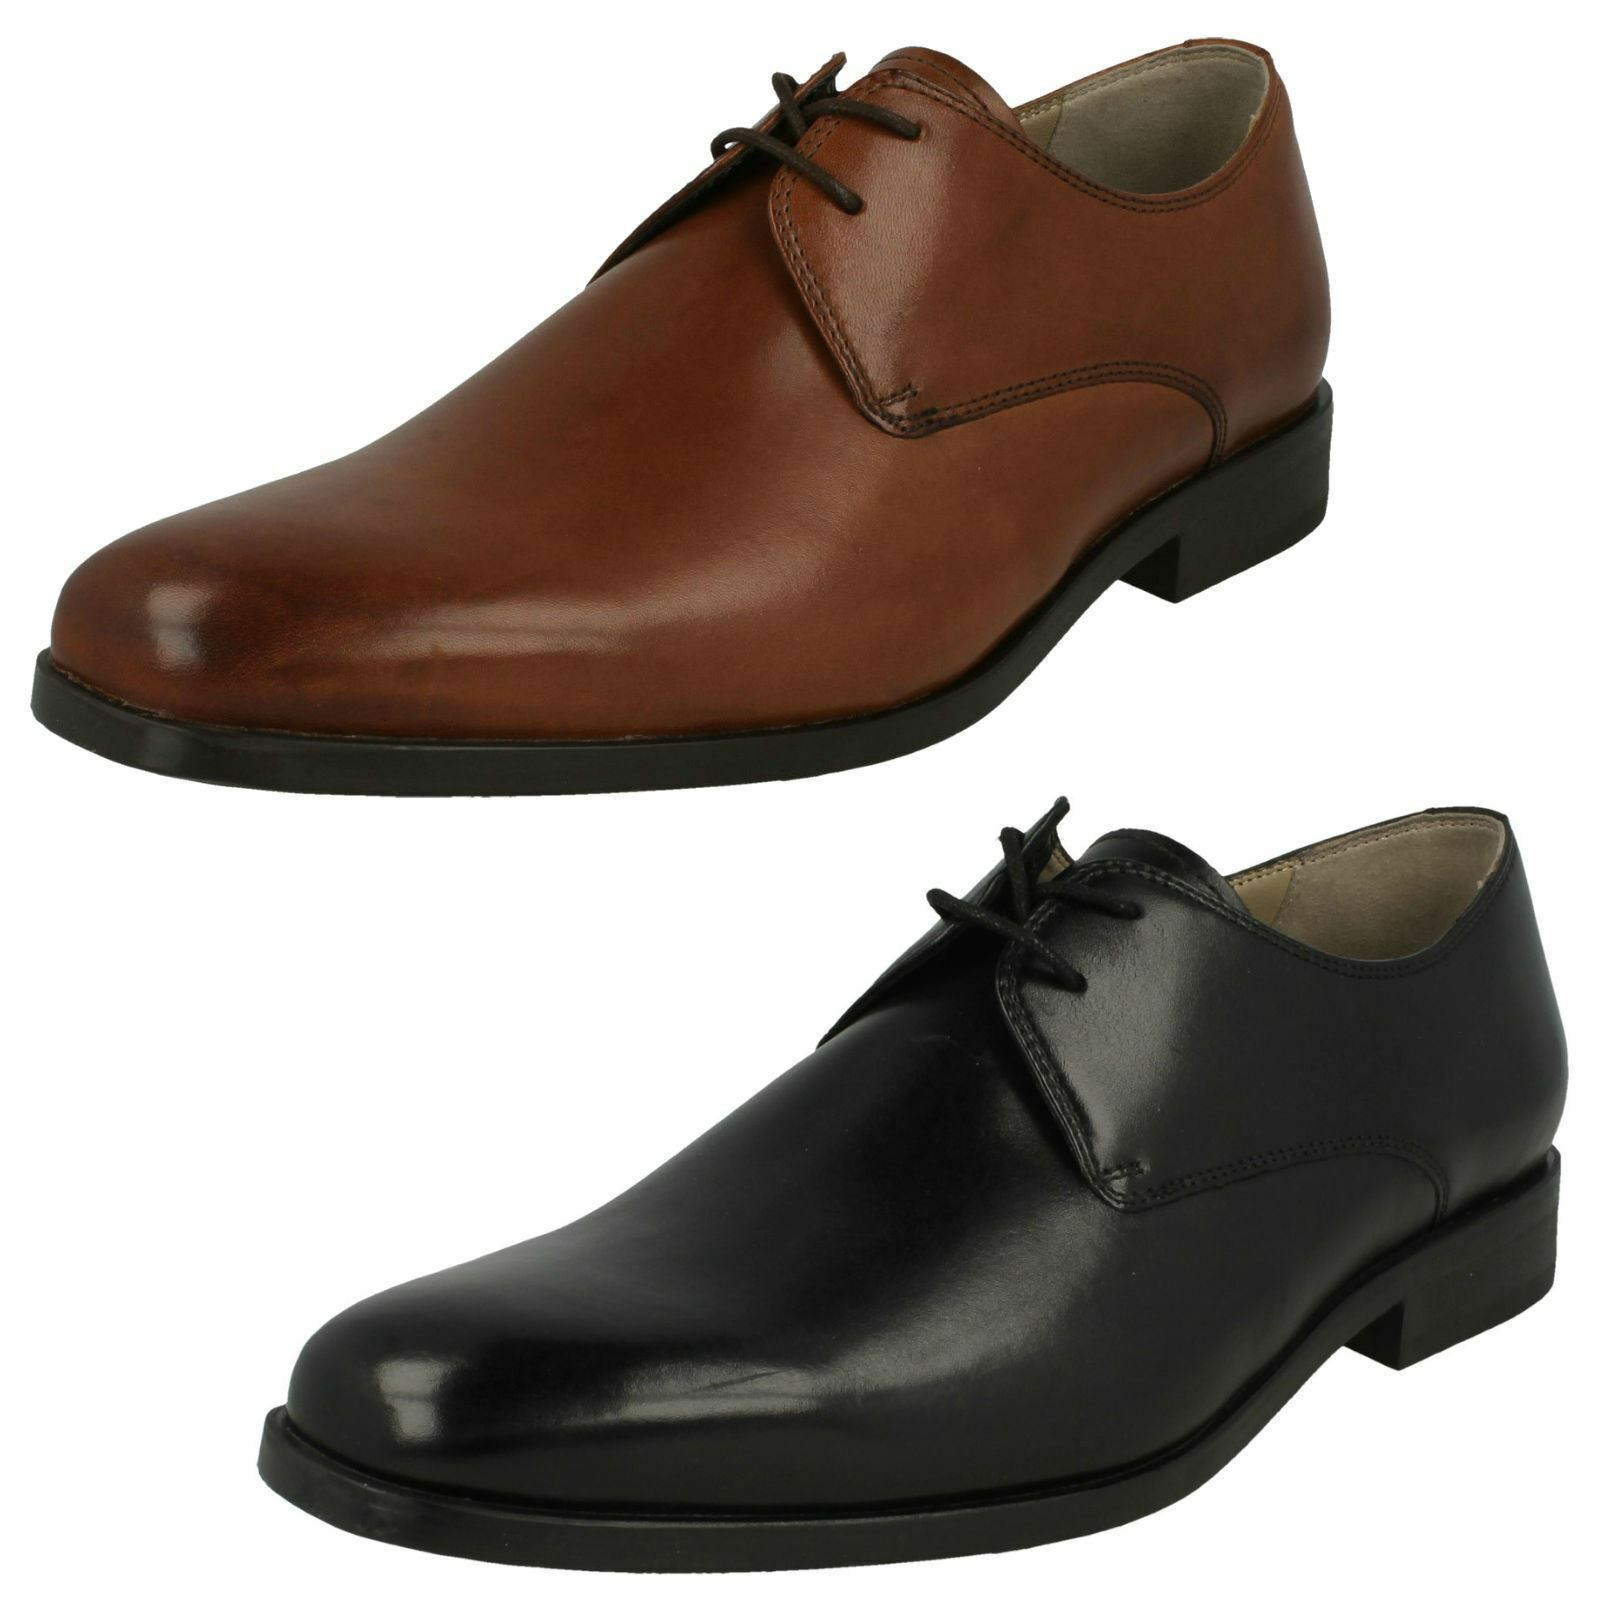 CLARKS MENS FORMAL LACE UP SHOE AMIESON WALK